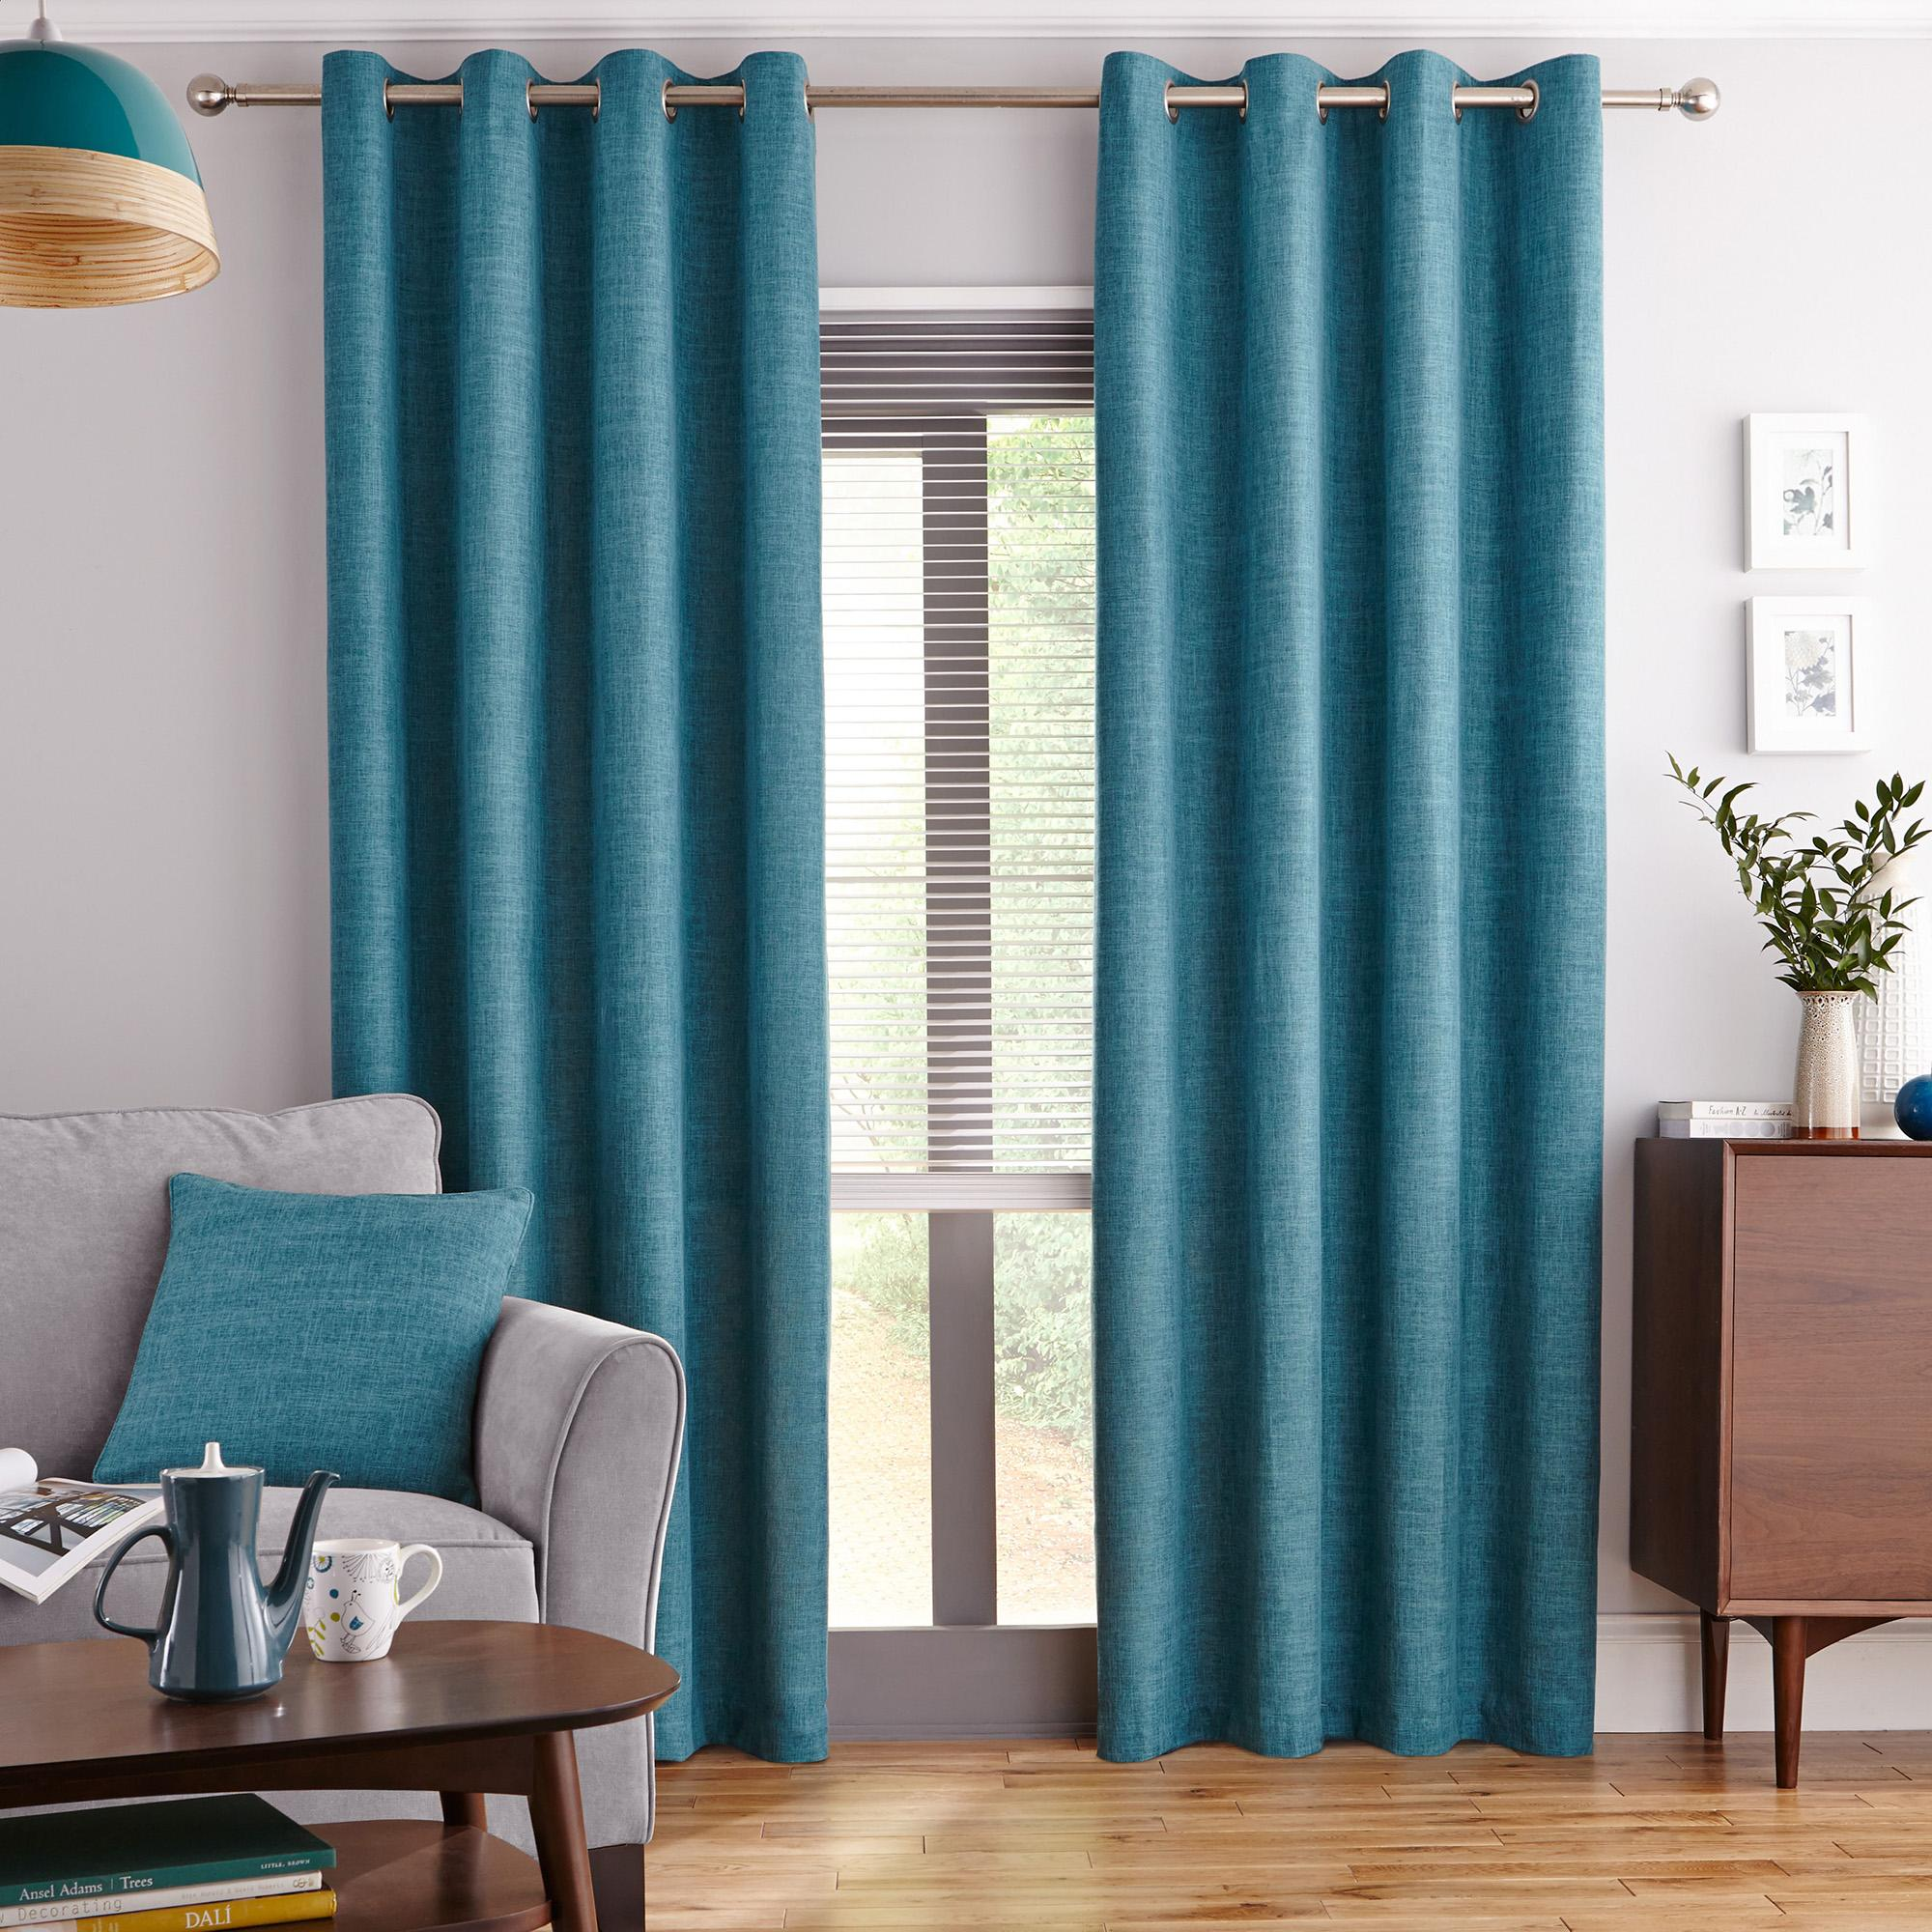 Teal Curtains for the House